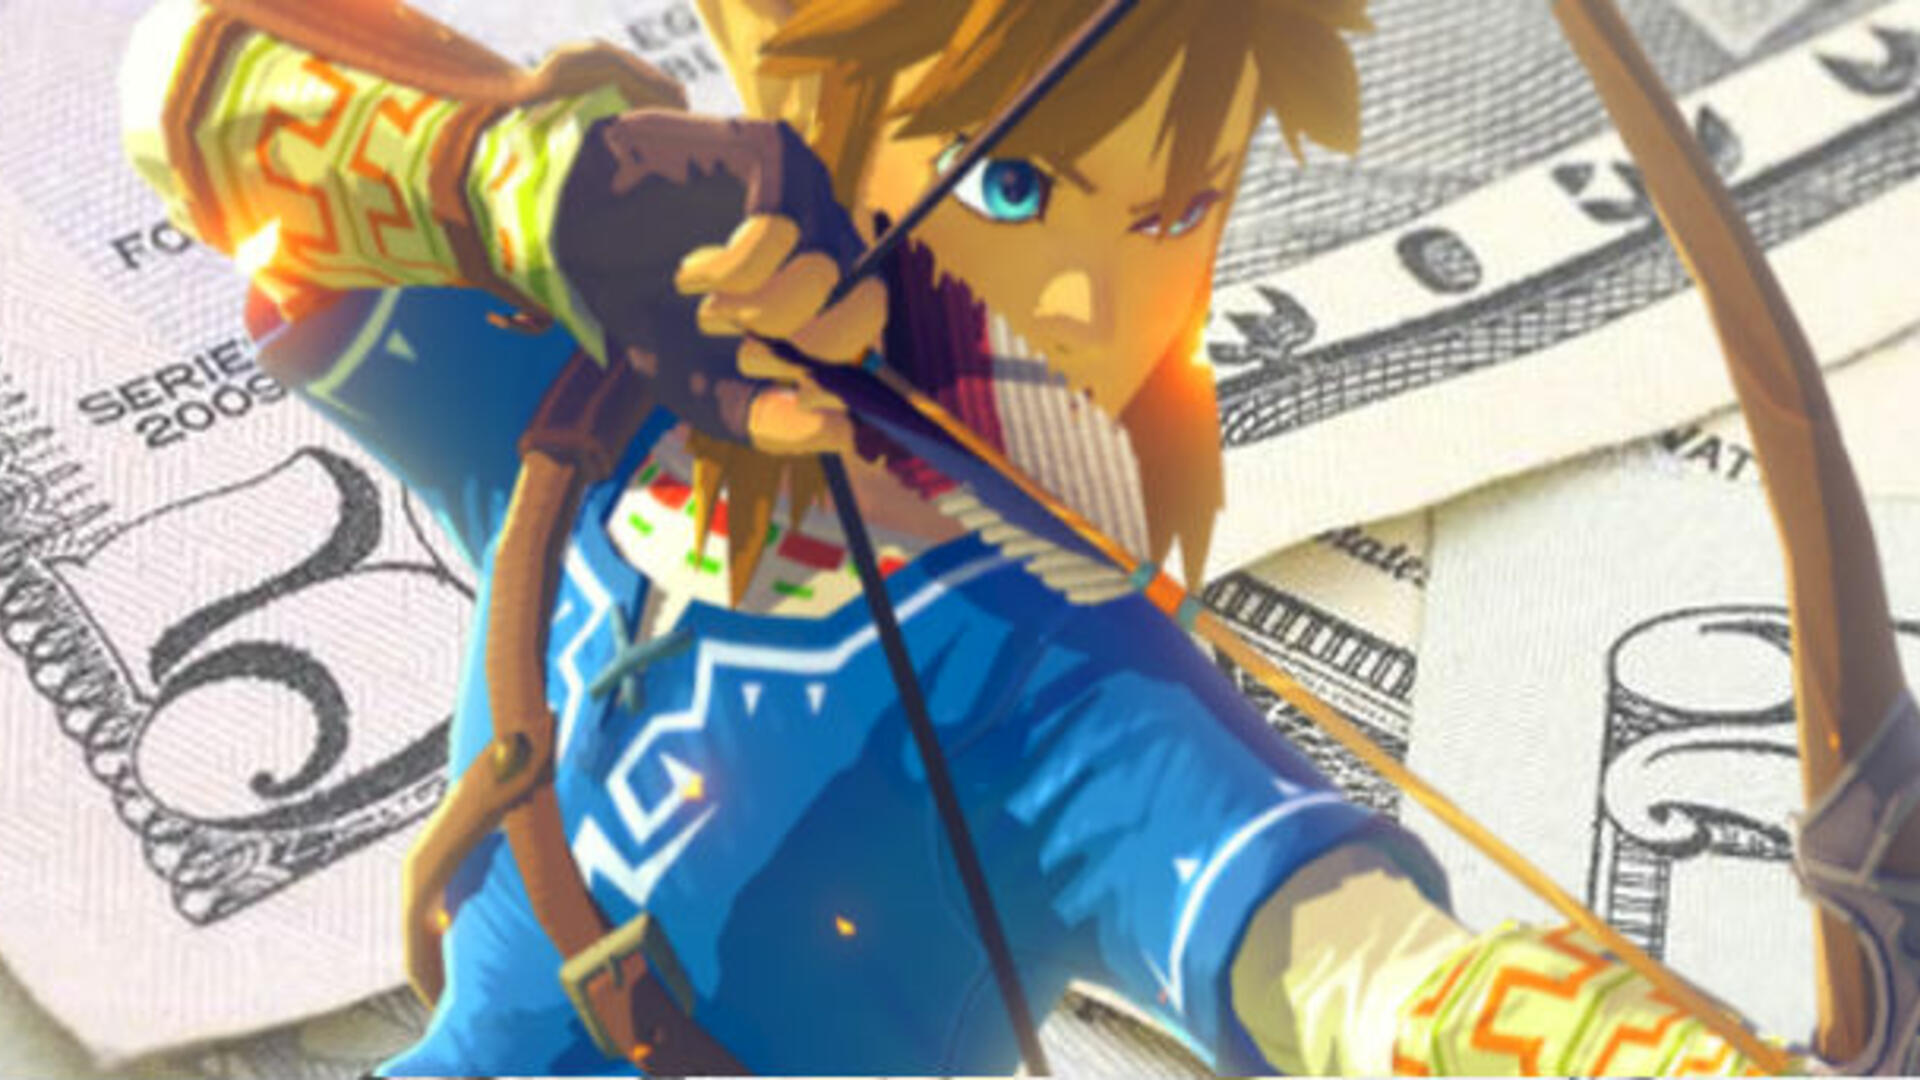 Legend of Zelda Black Friday Deals - Toys, Games, Books, Accessories, and More